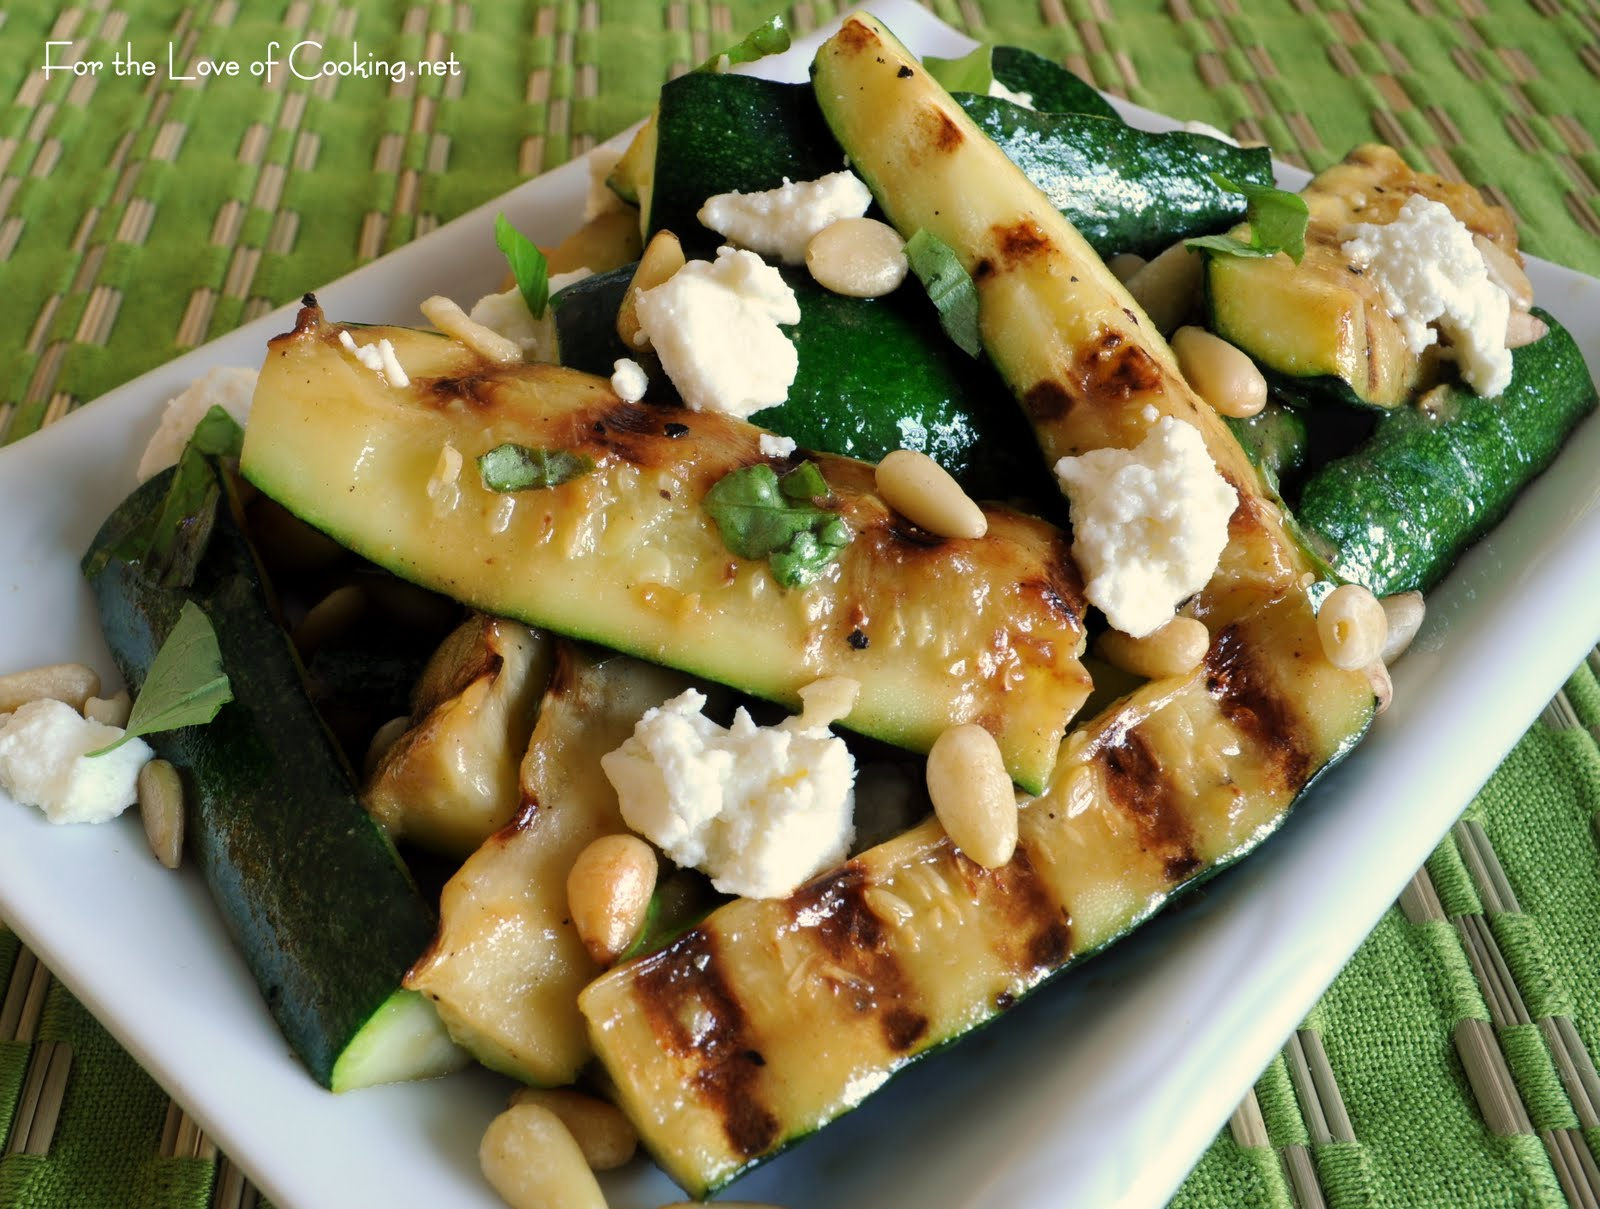 ... the Love of Cooking: Grilled Zucchini Spears with Lemon Vinaigrette